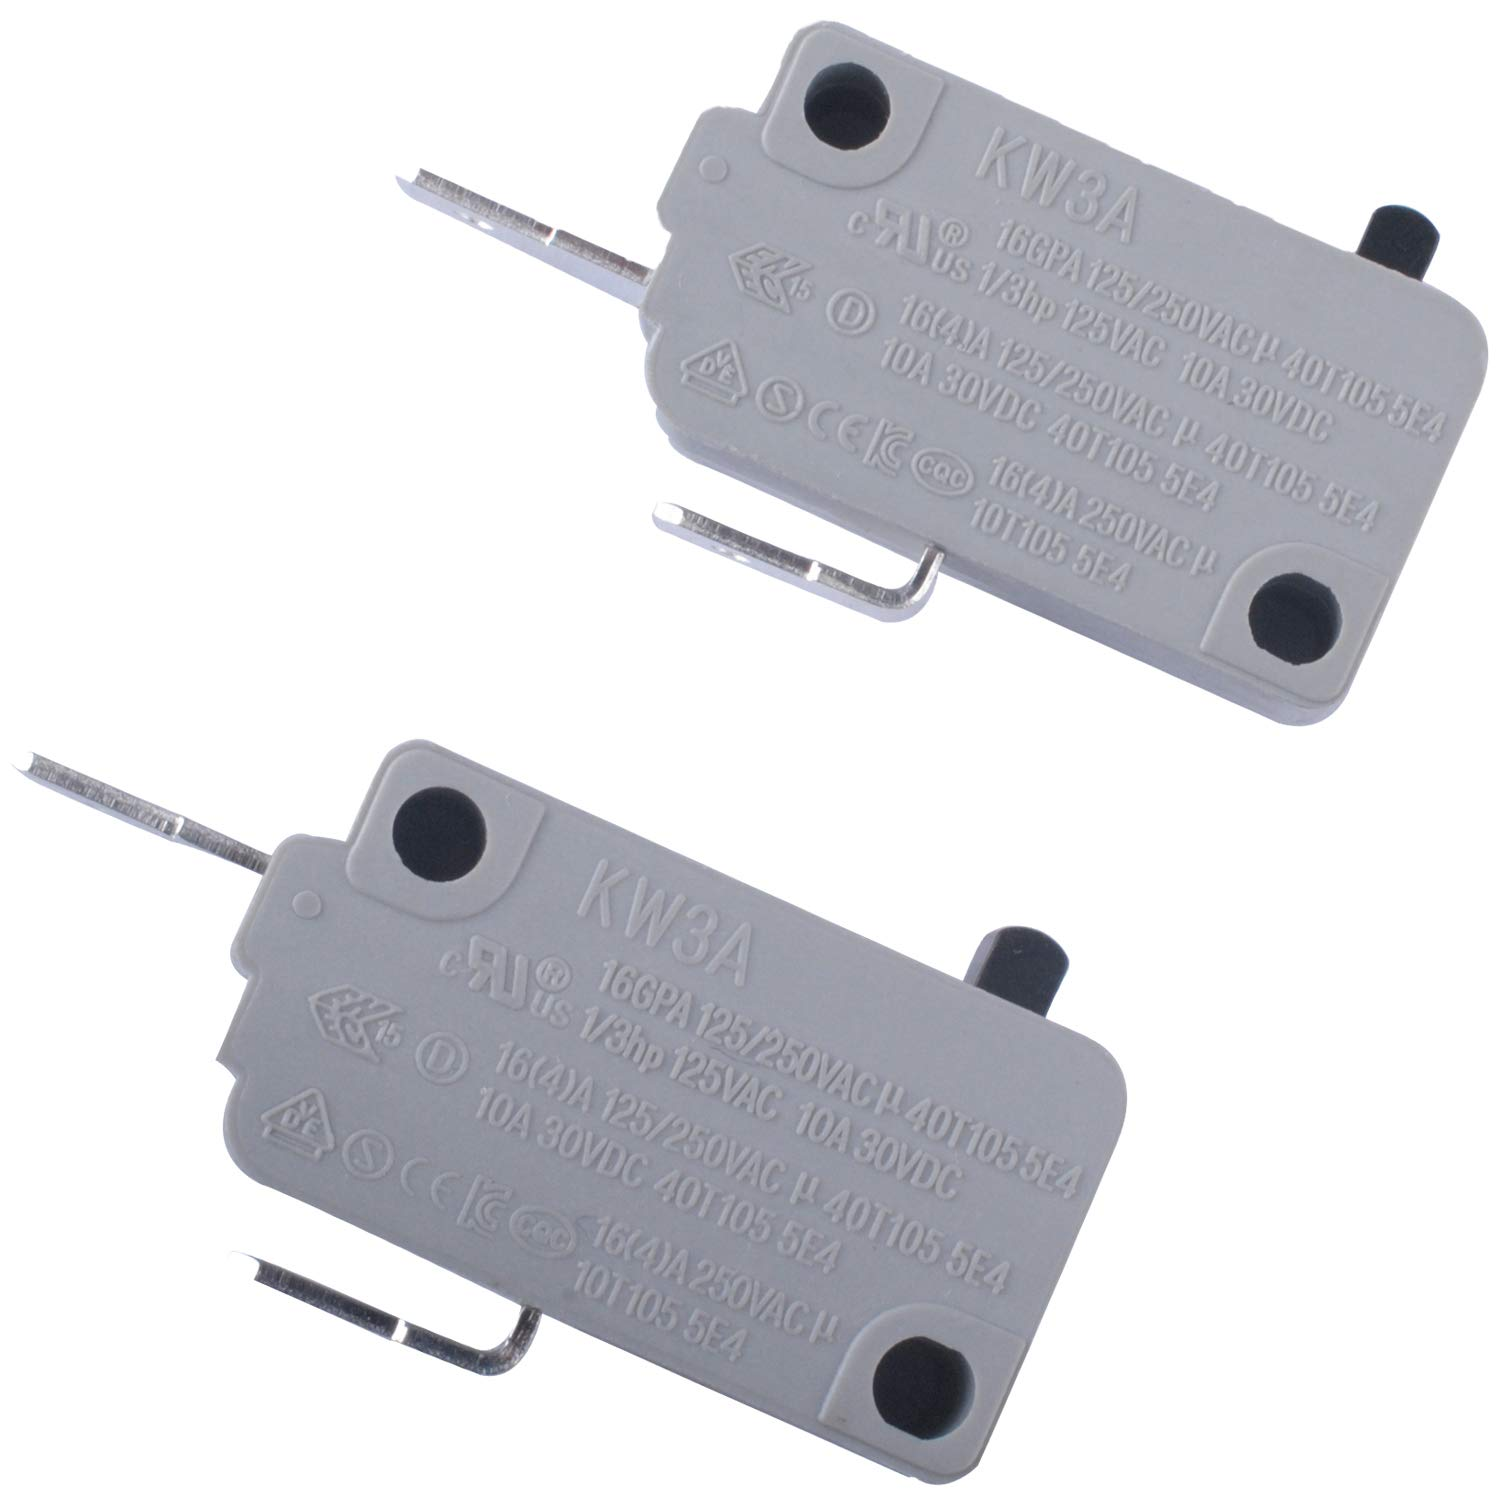 KW3A Microwave Door Switch , 2 Pin Normally Open & Normally Close Micro Switch DR52 16A 125/250V for Microwave Oven Rice Cooker